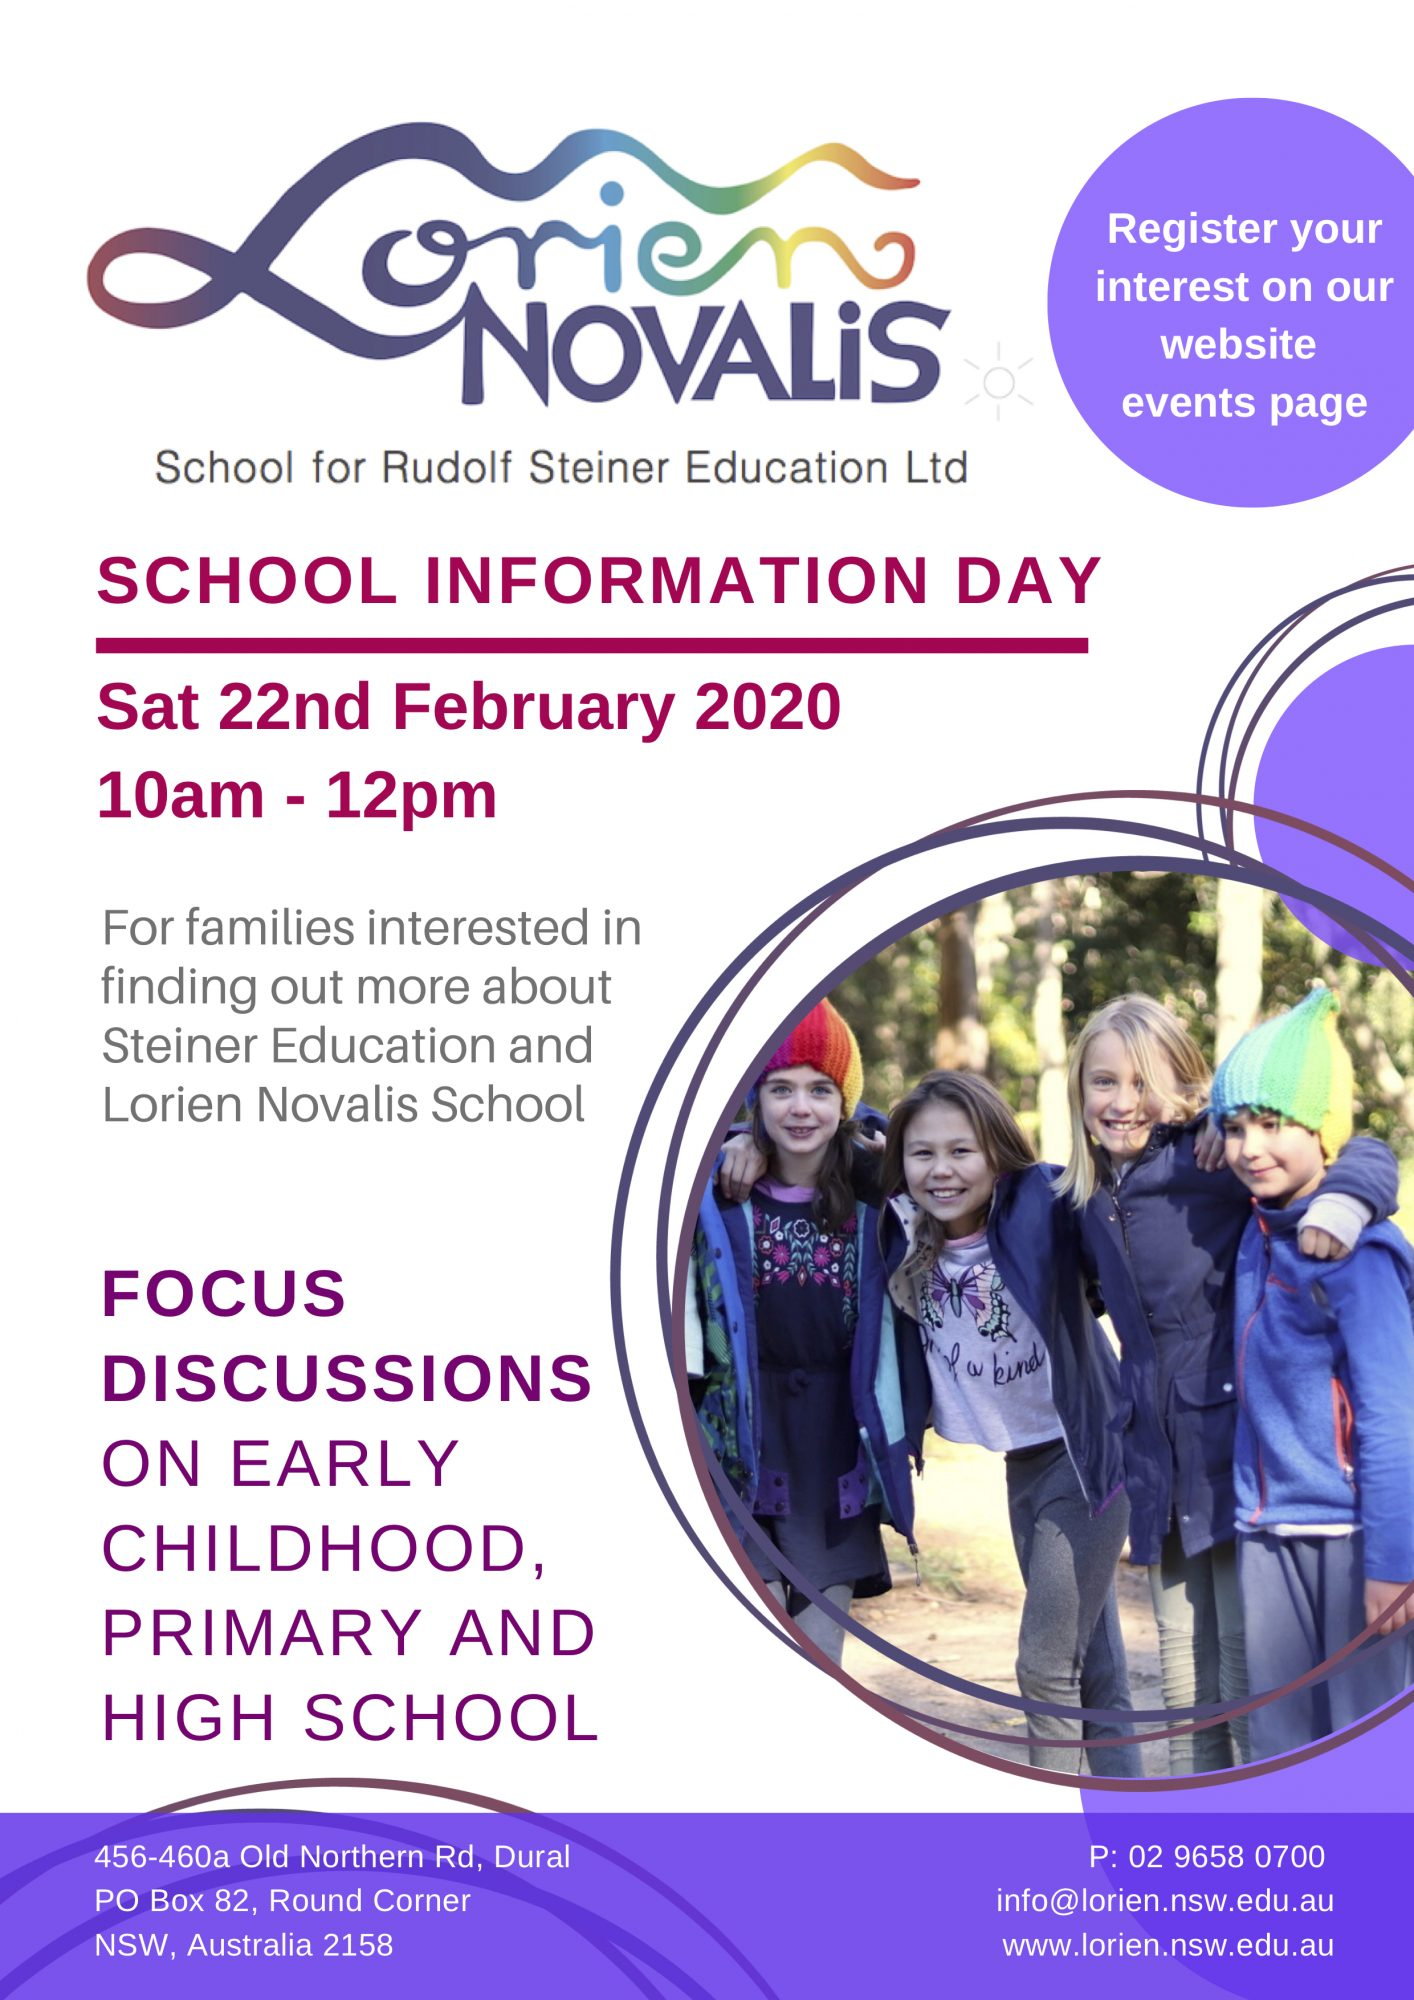 Lorien Novalis School Information Day